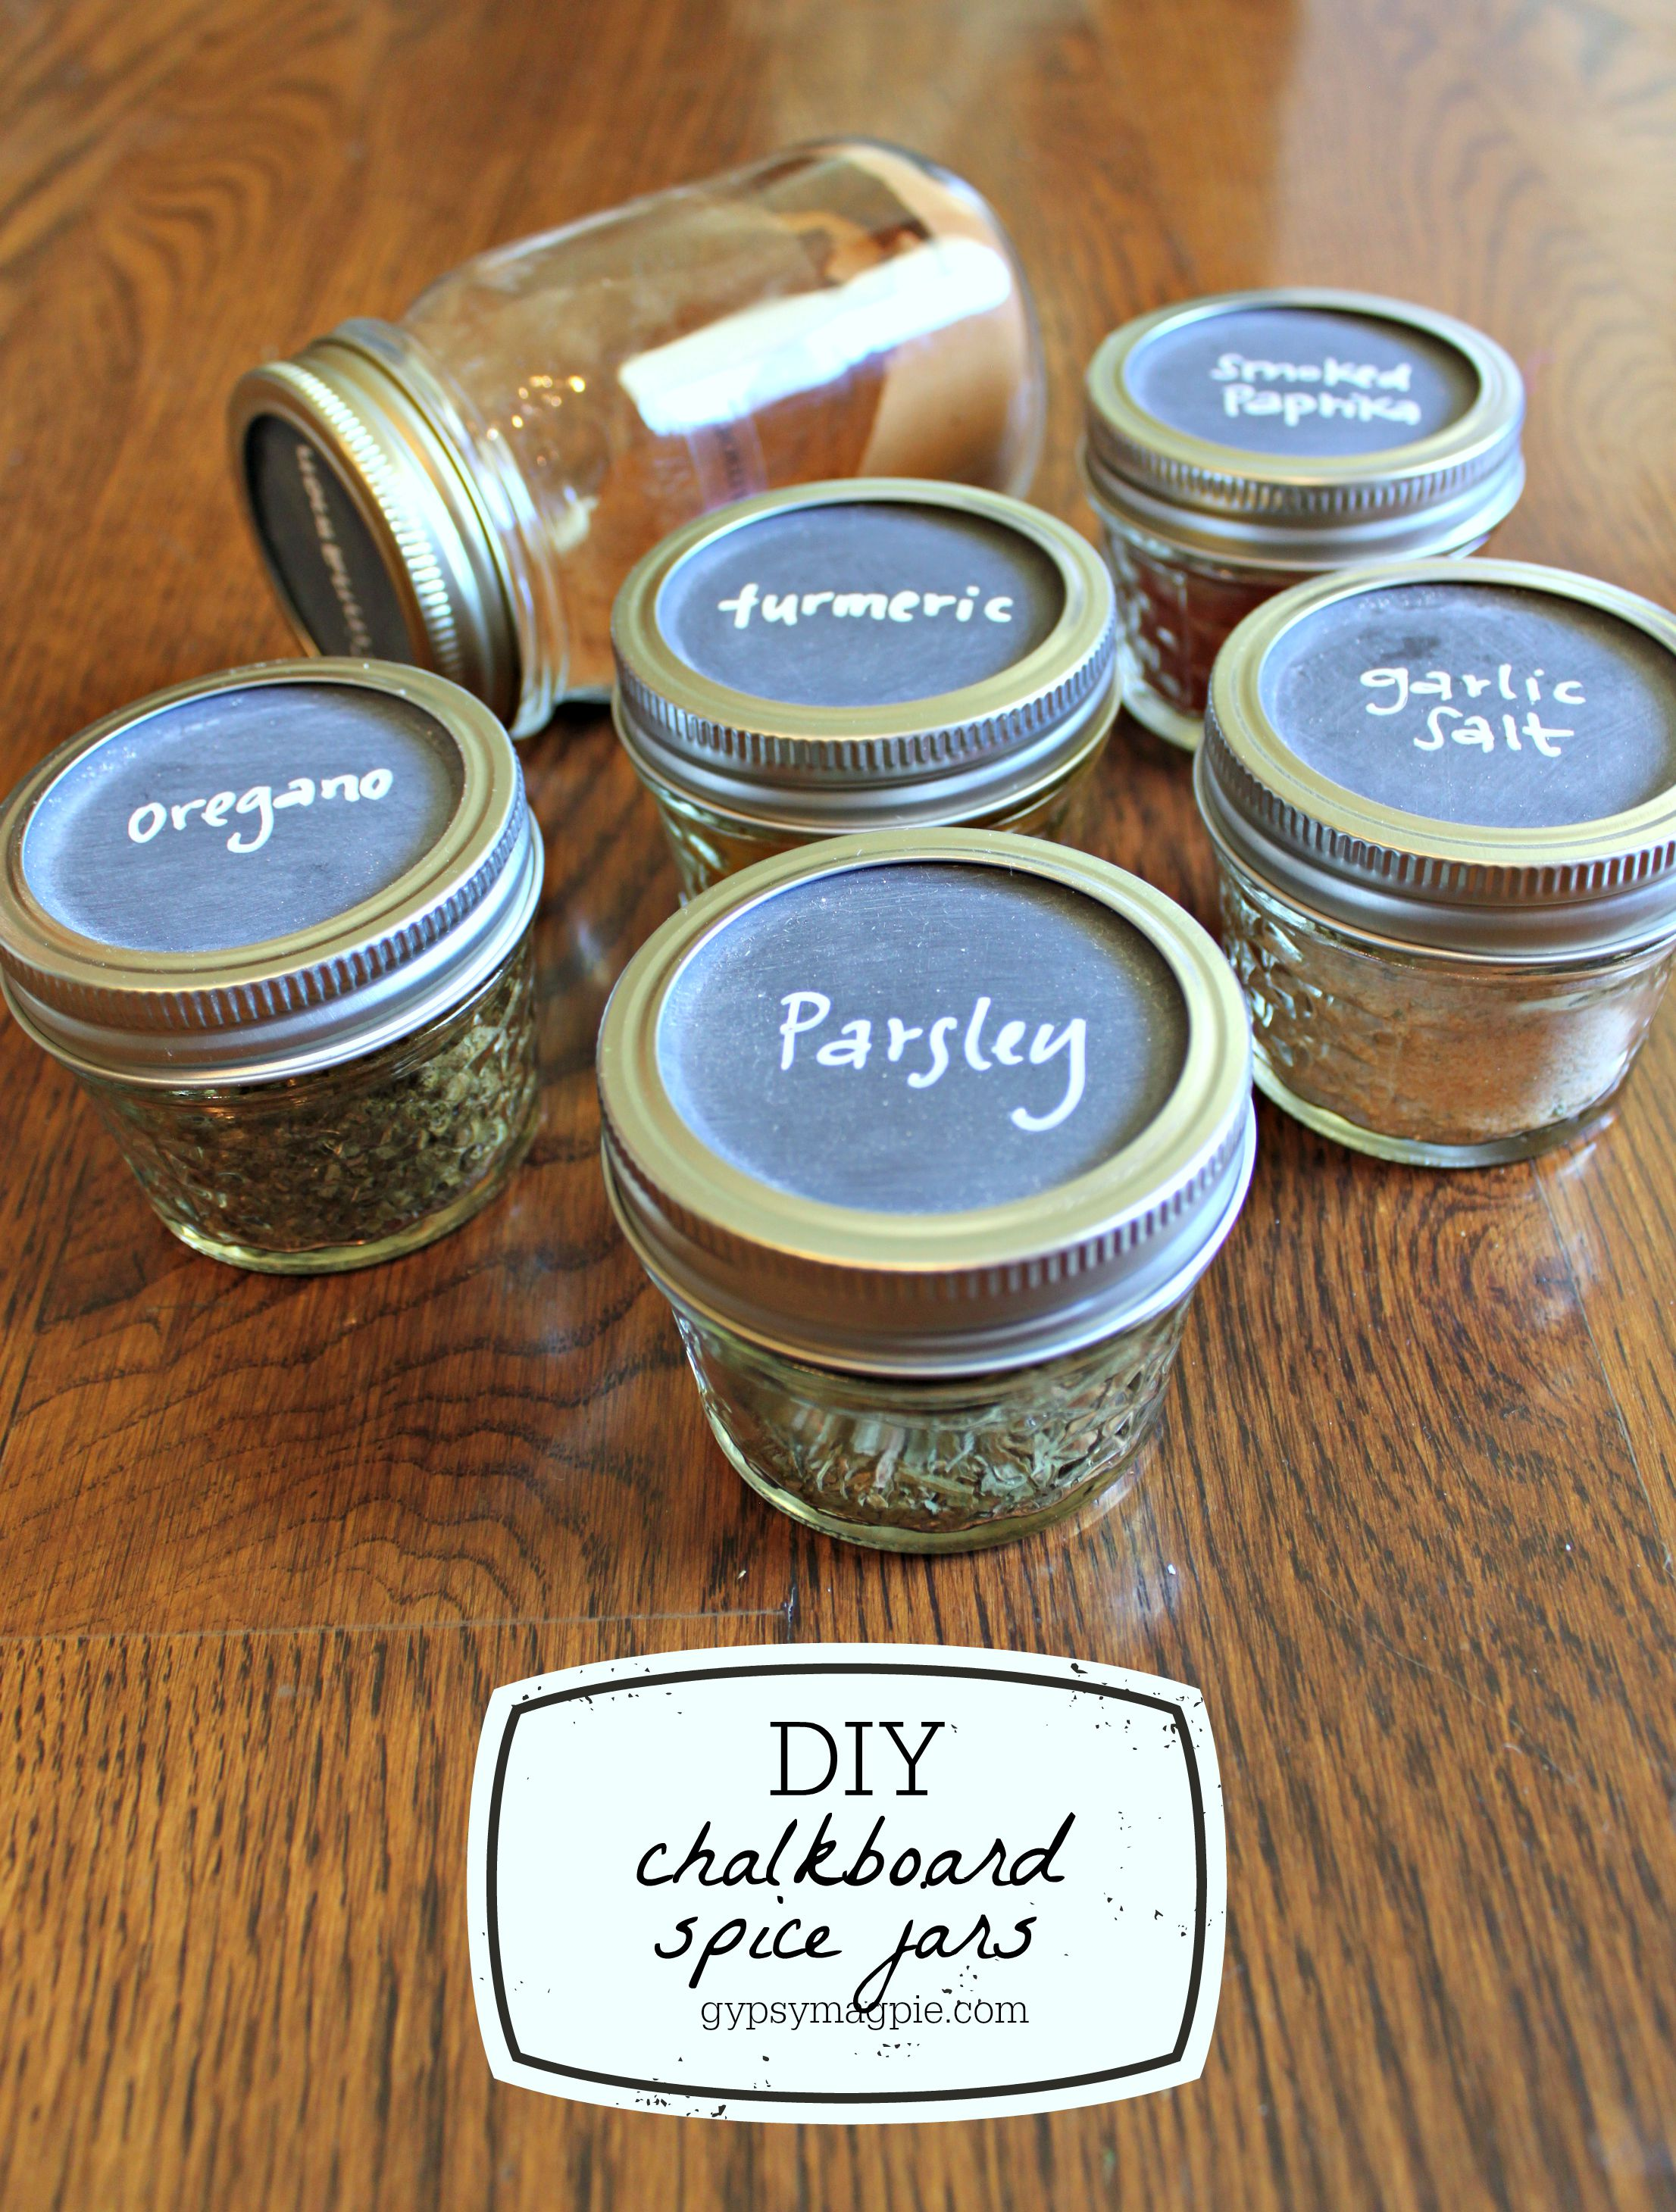 DIY Spice Jars with Chalkboard Labels {Gypsy Magpie}